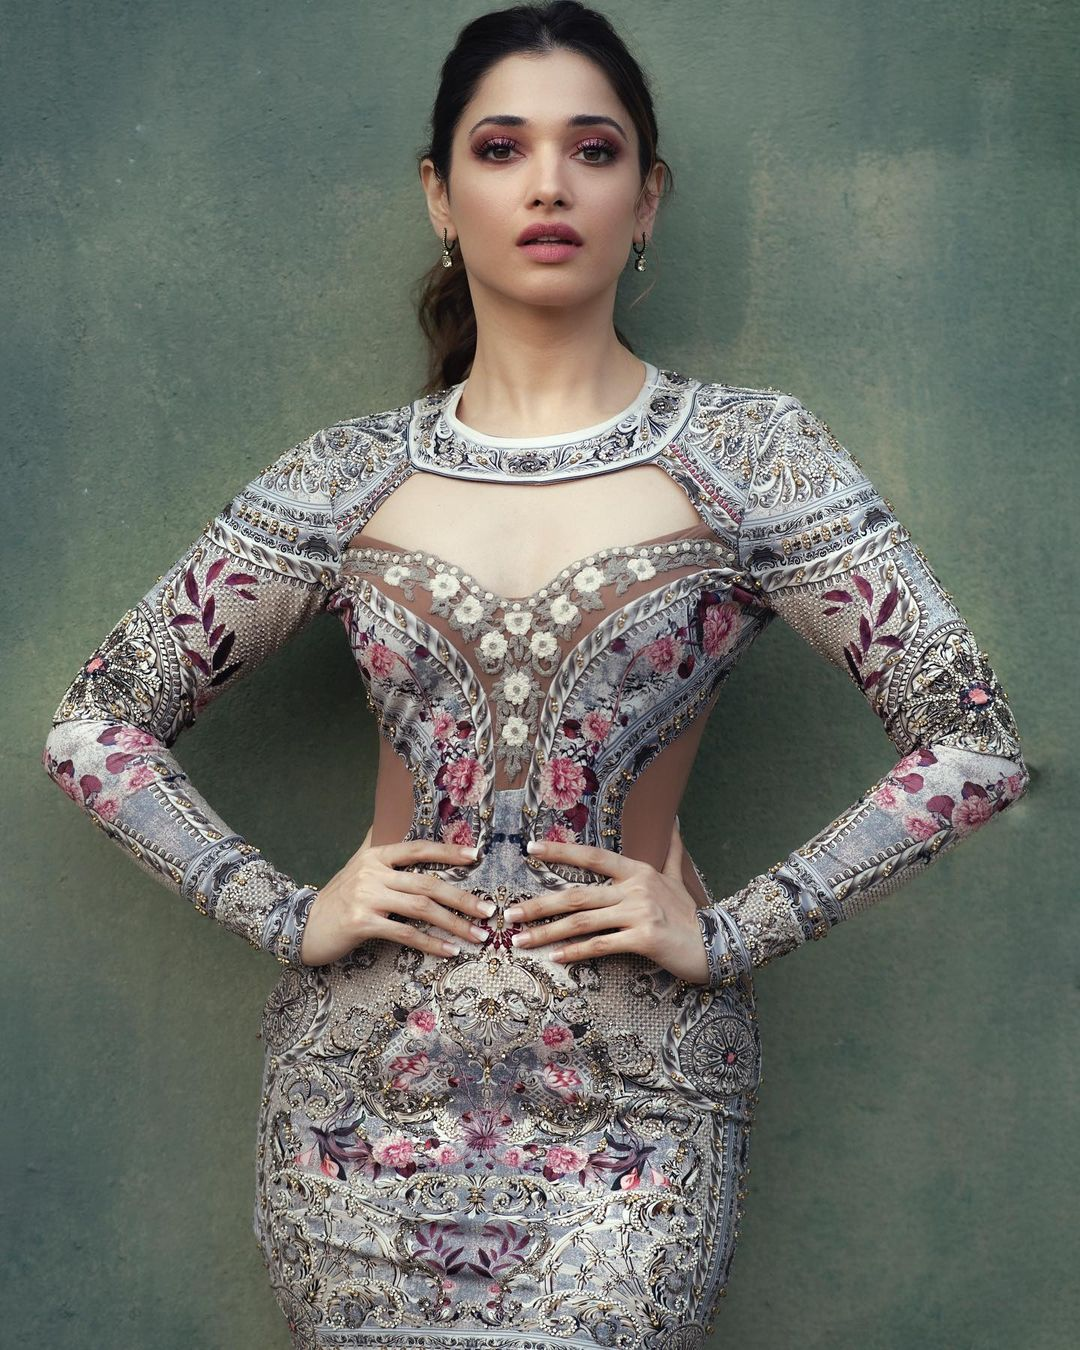 Gorgeous Stunning actress Tamannaah in Rocky Star embroidery tube dress.  Outfit - Rocky star official. 2021-08-06